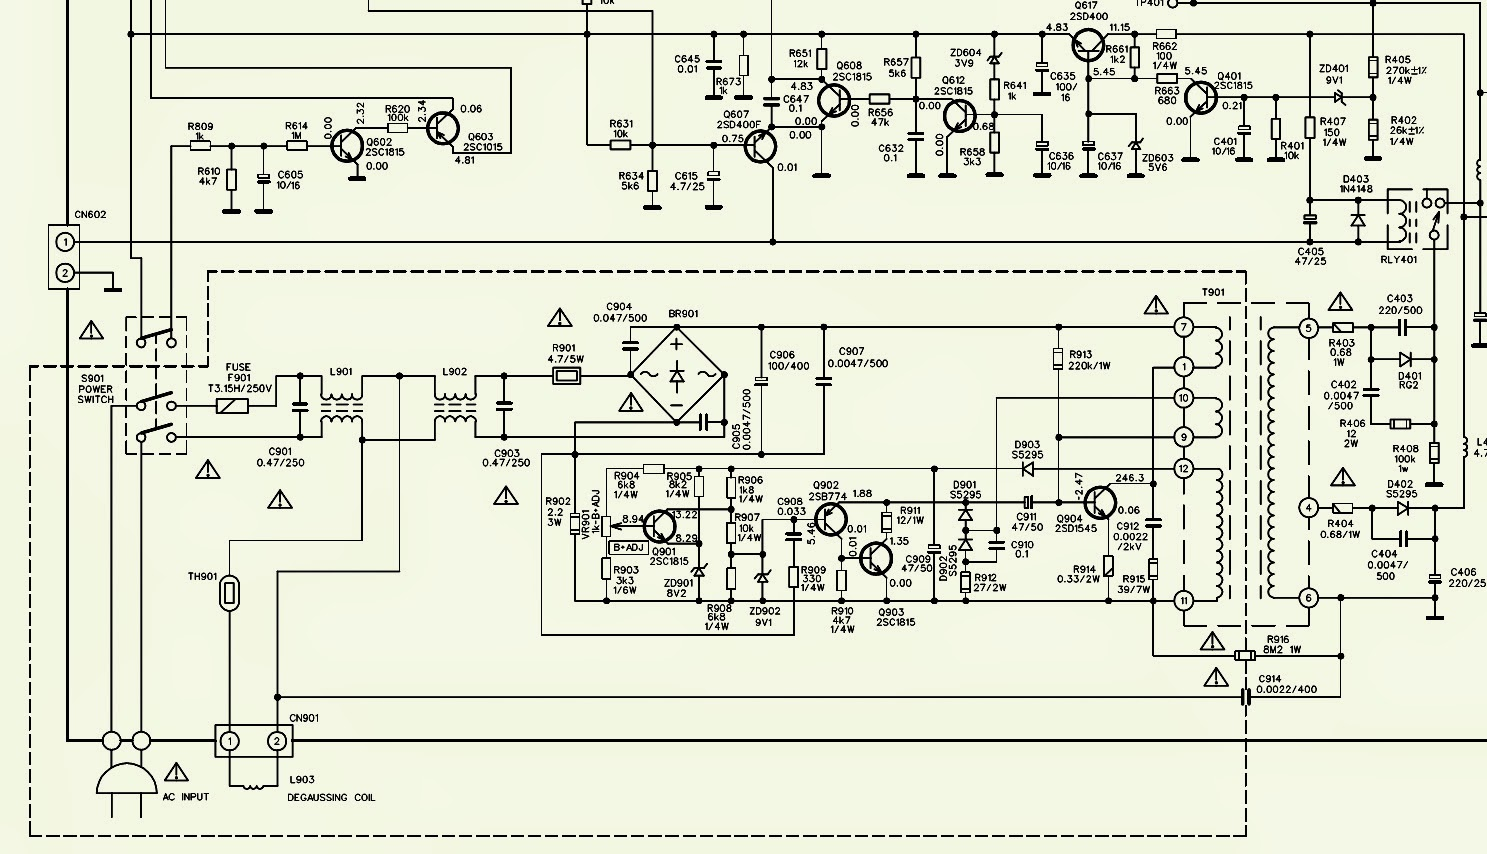 medium resolution of tv ph19d led tv power supply smps schematic circuit diagram 6000 power supply smps schematic circuit digram electro help